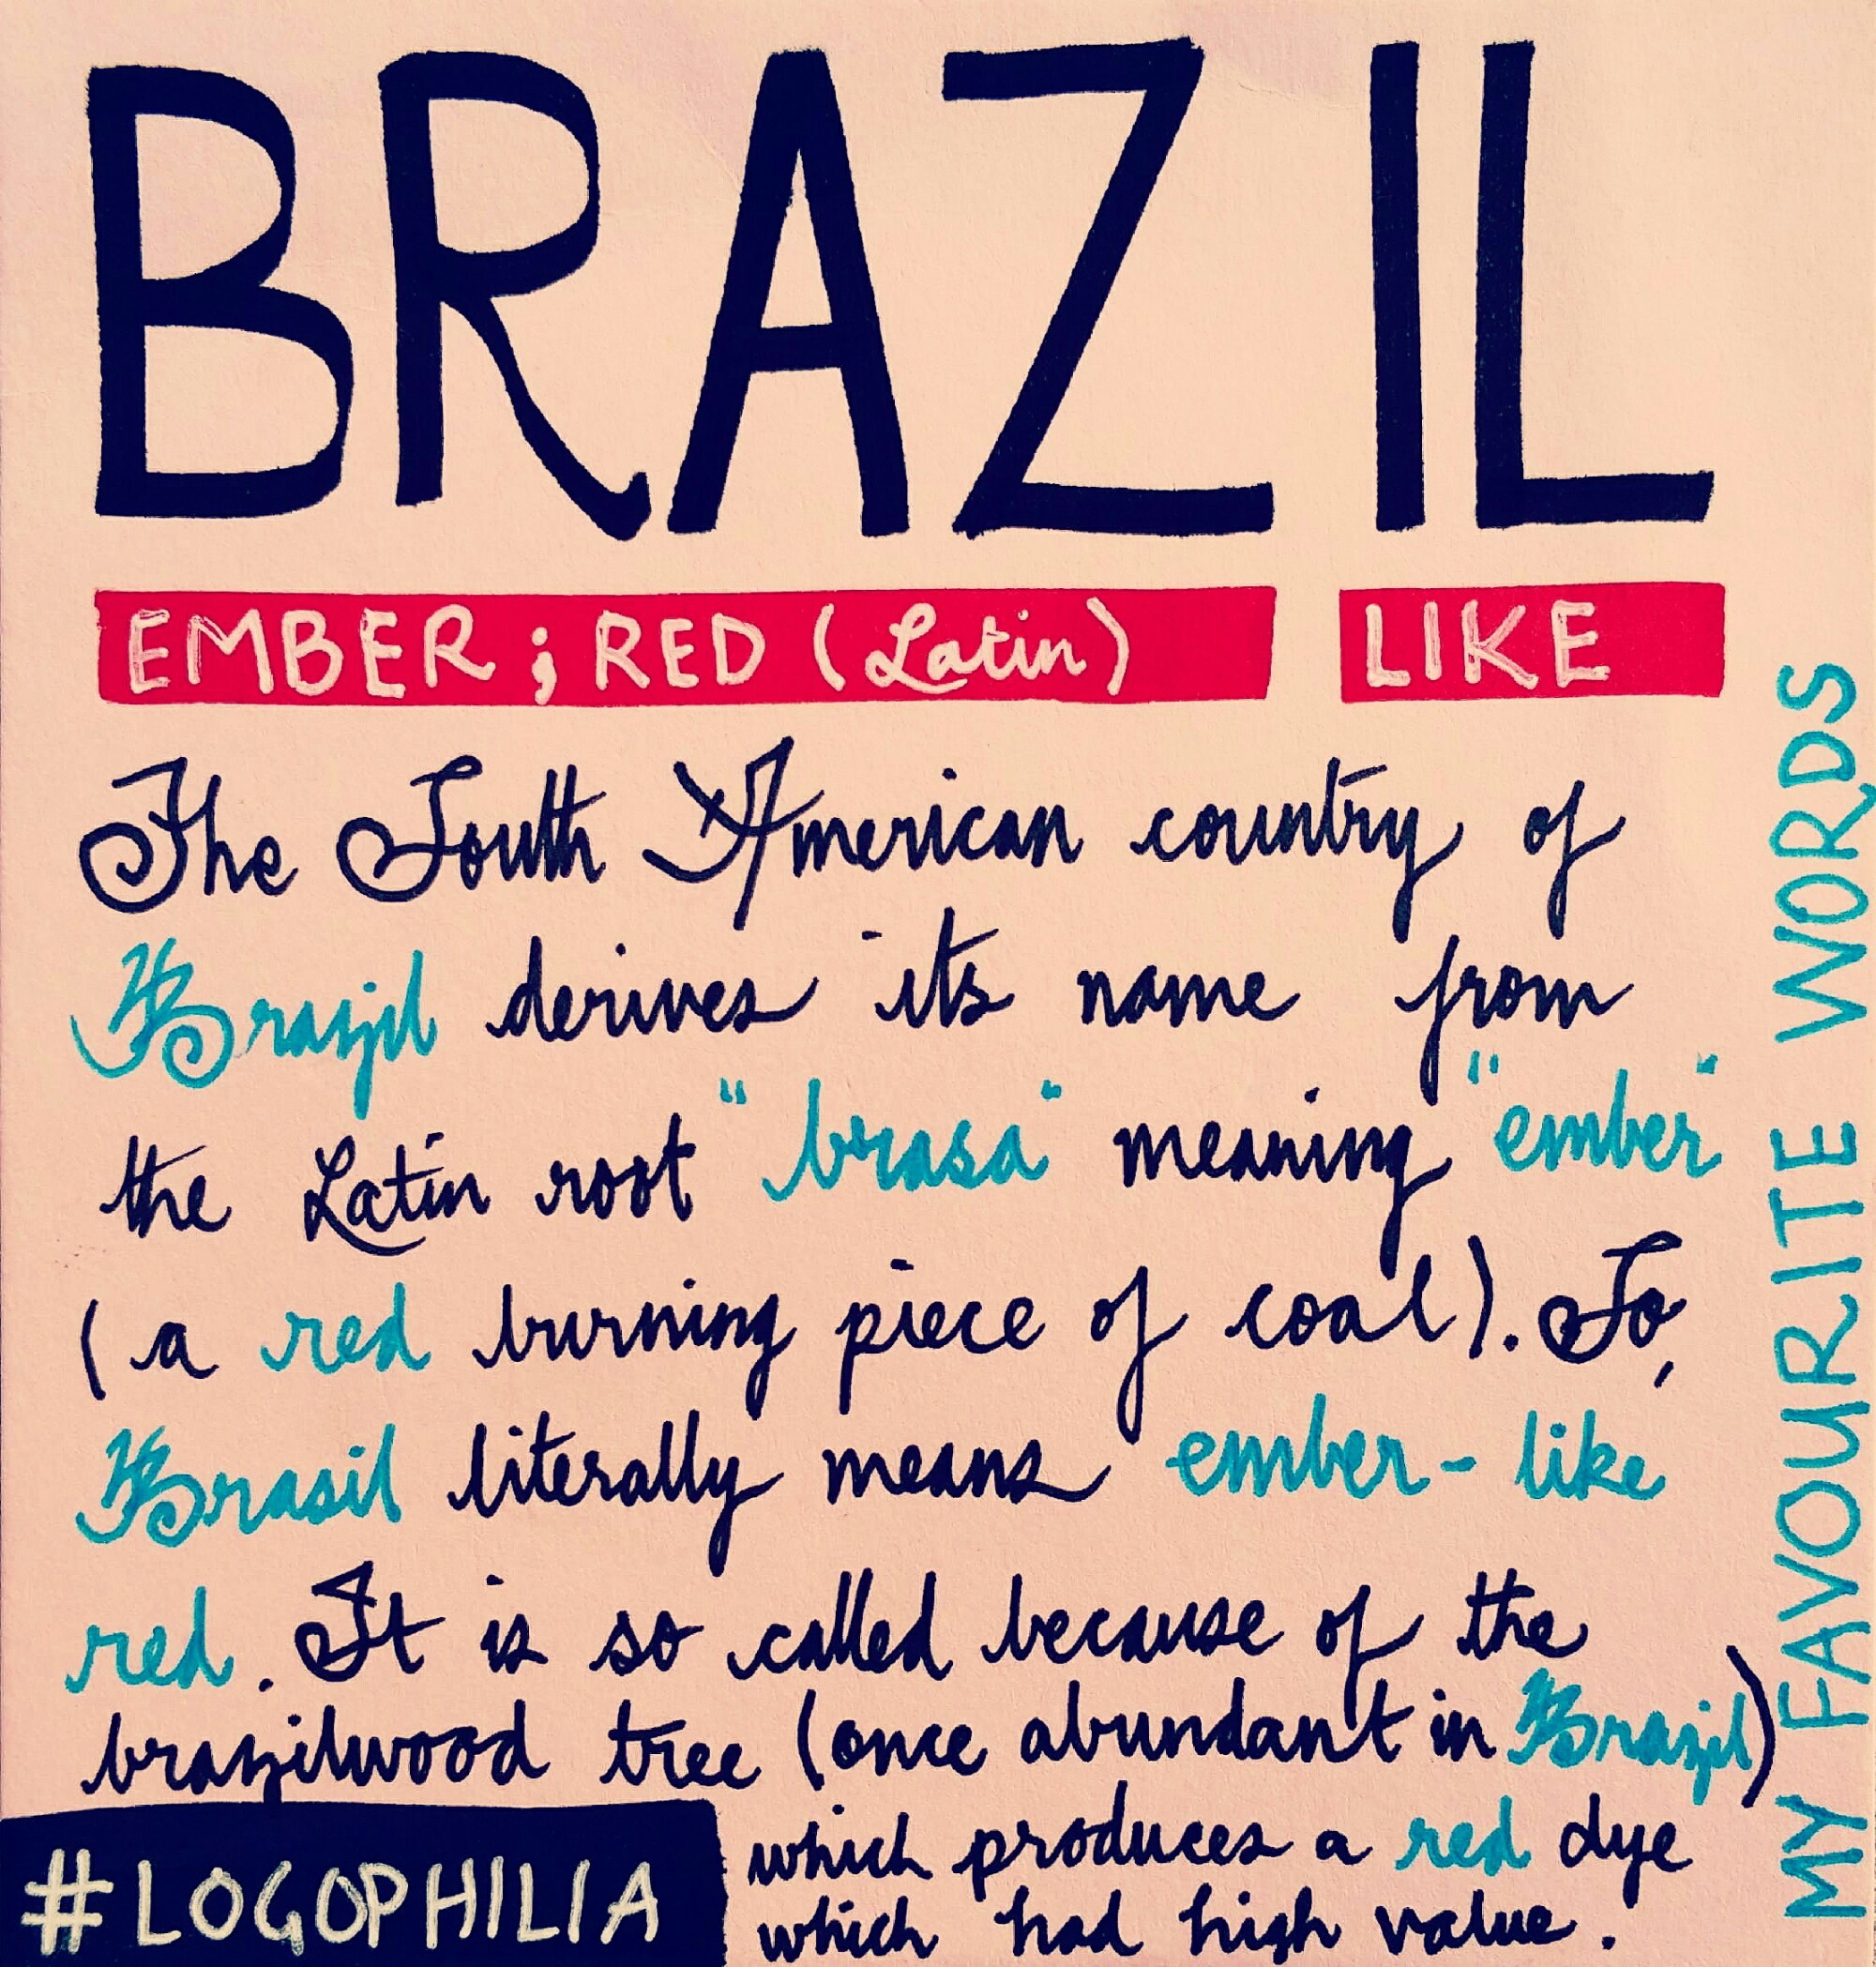 The Etymology of Brazil